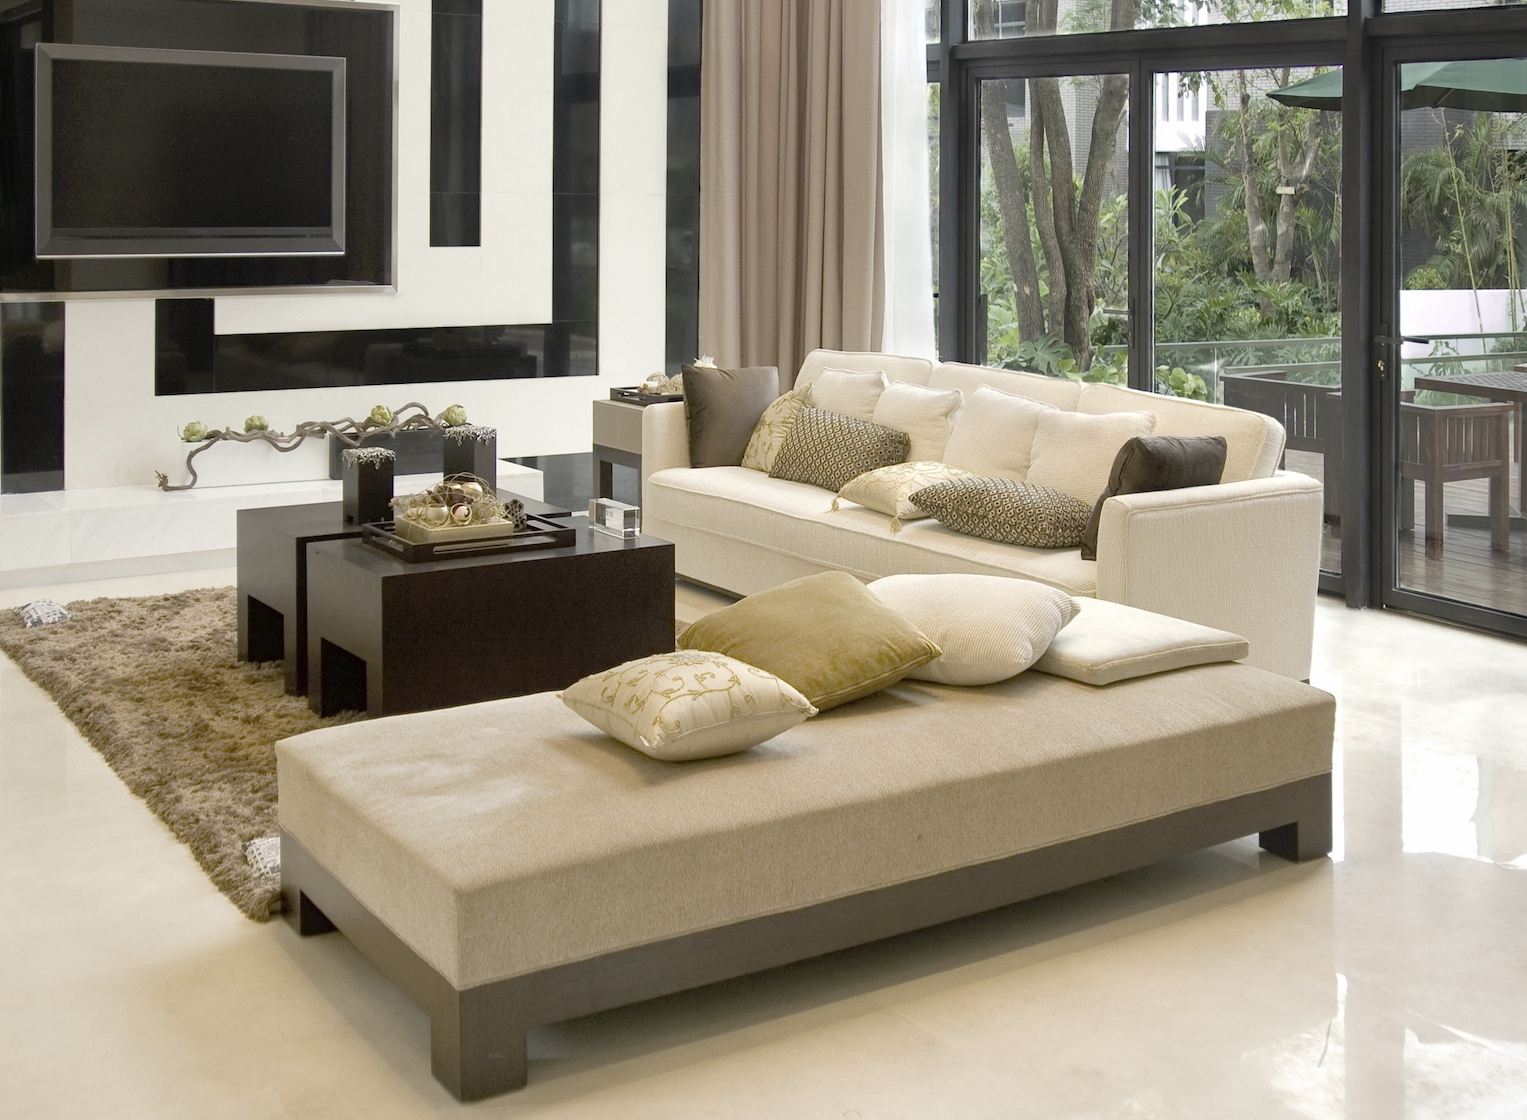 home decor design trends 2015 home decor trends 2015 12222